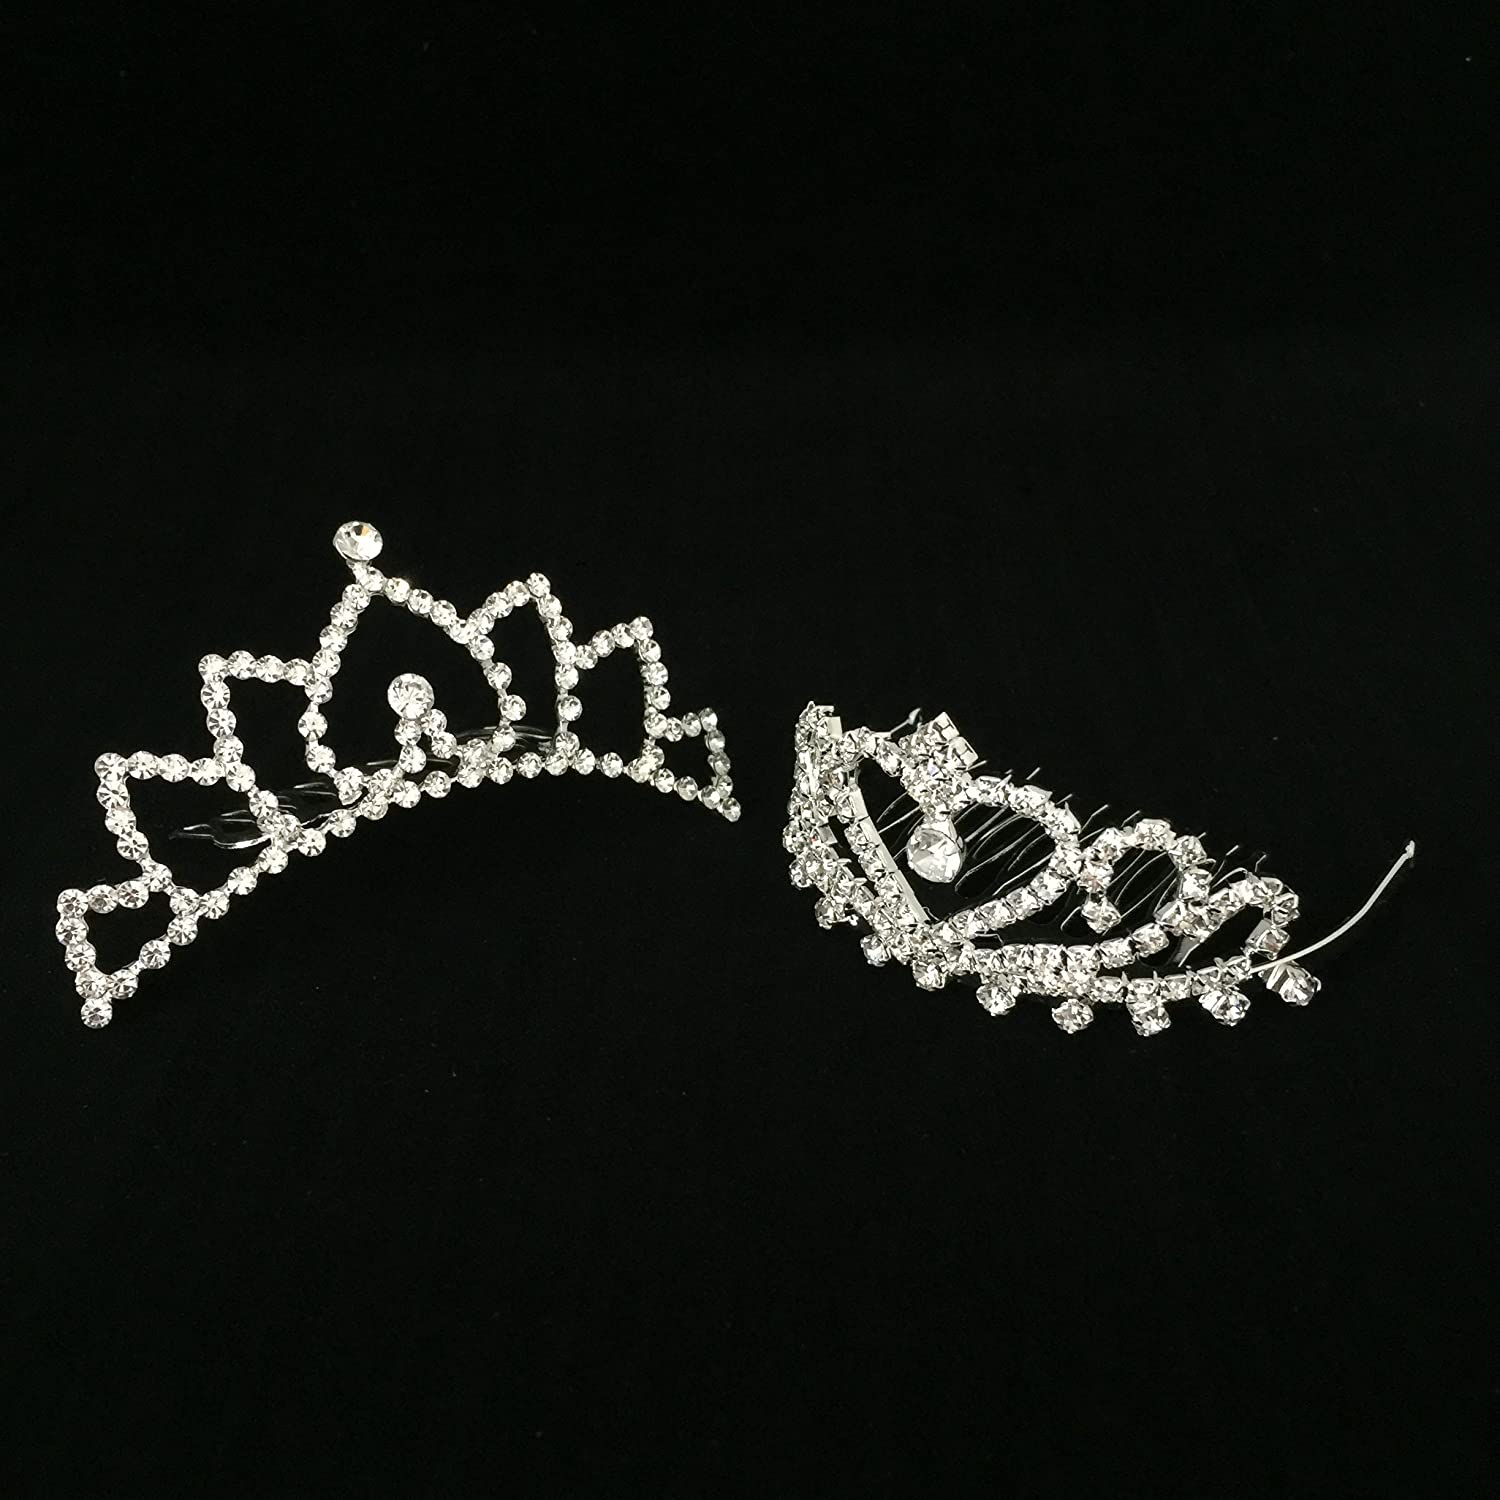 Butterfly Craze Girls Princess Tiara Crown with Comb For Costume Accessories 2 pcs Heart To Heart